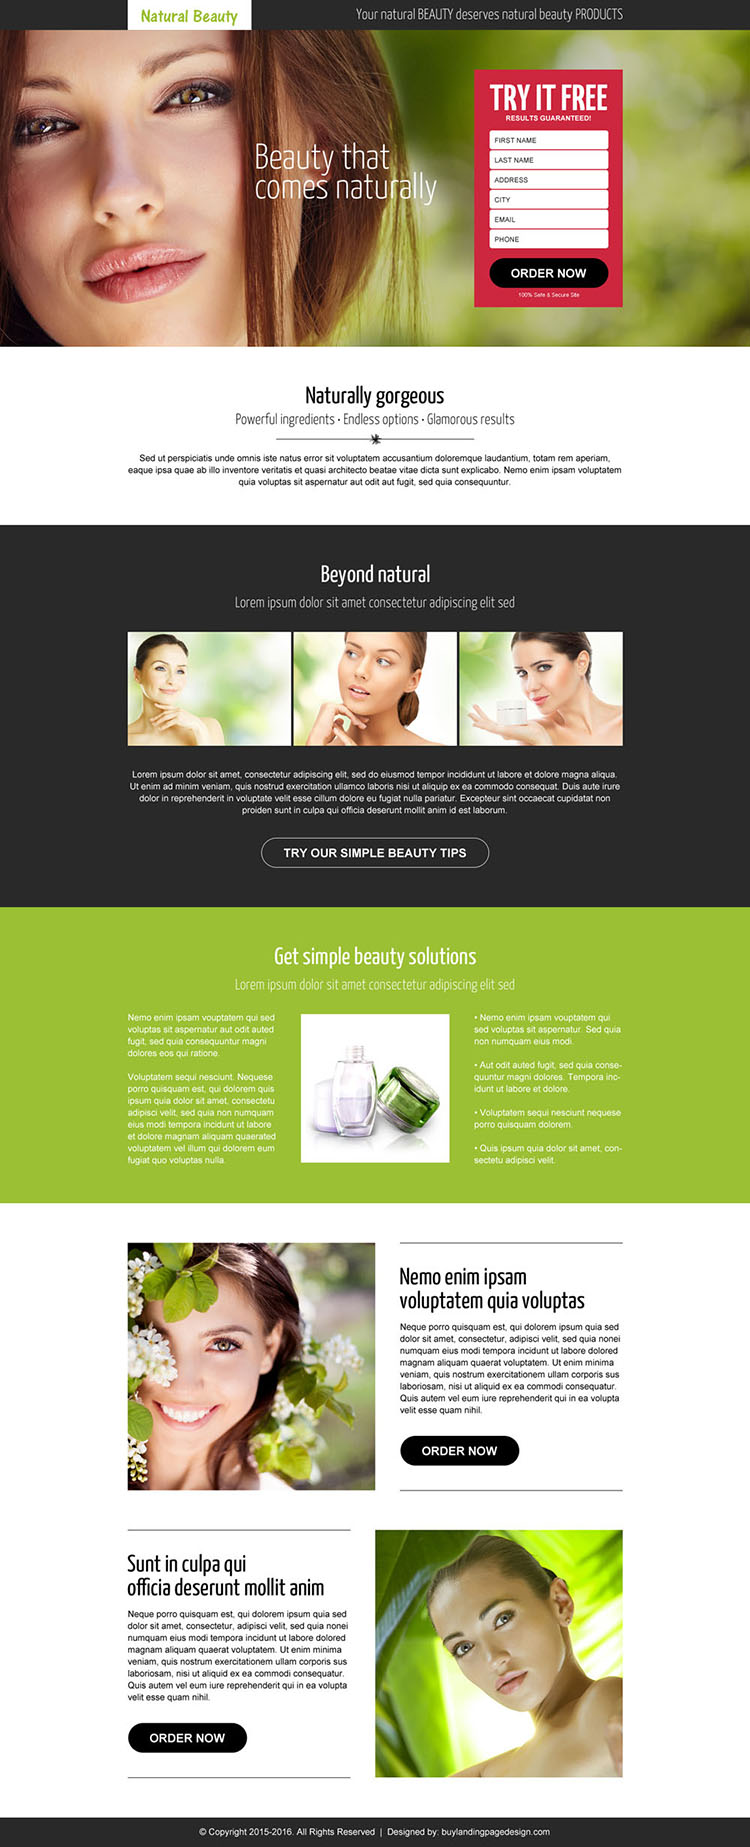 natural beauty product lead generating landing page design template